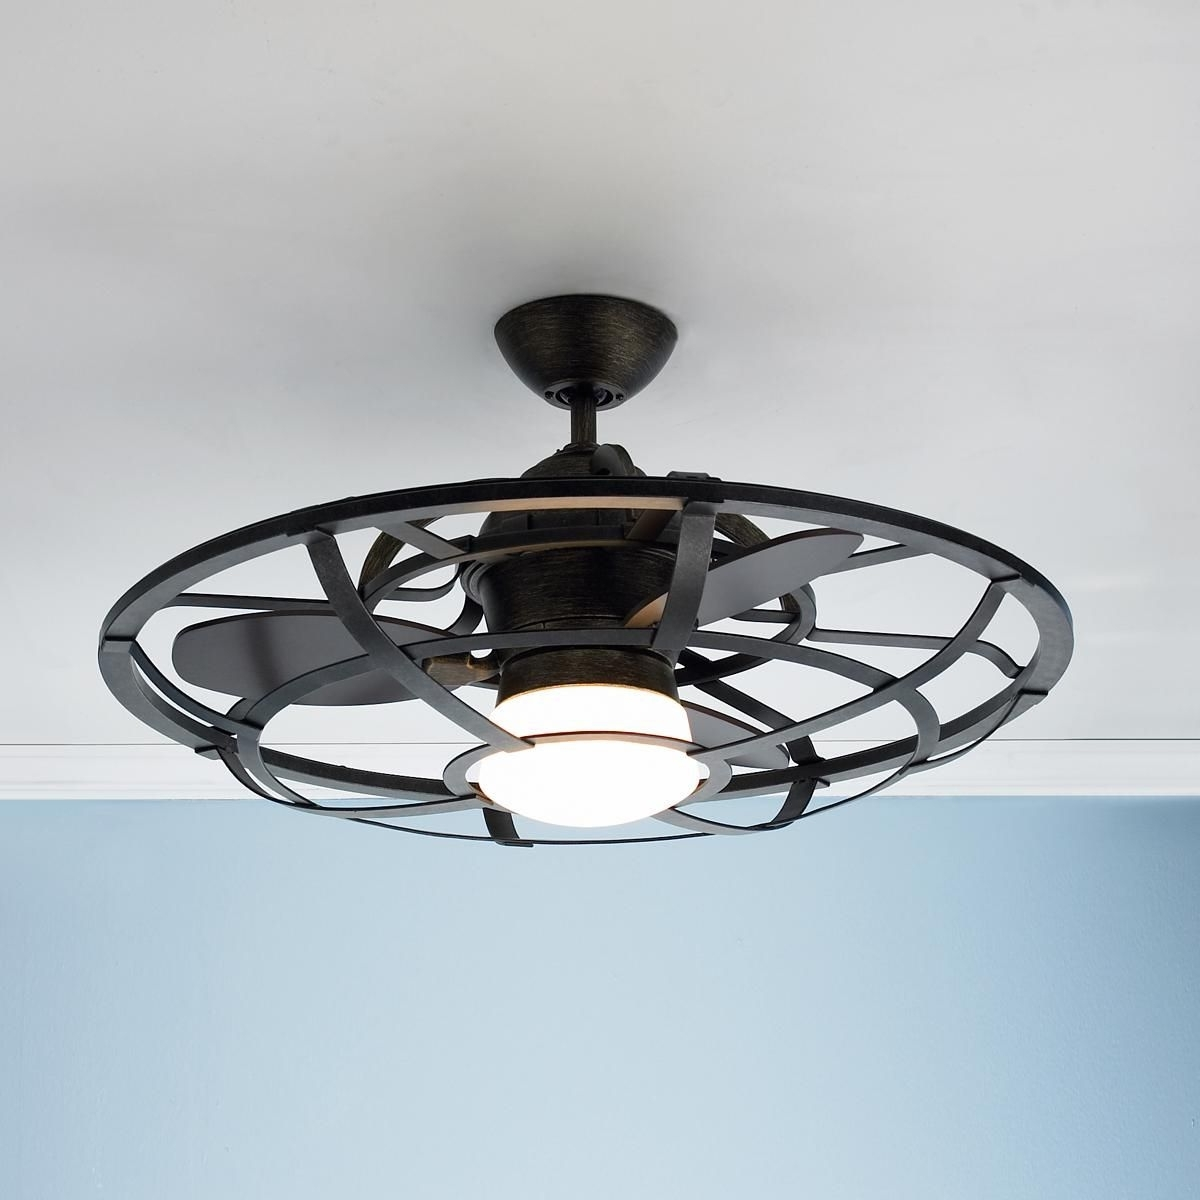 Widely Used Industrial Outdoor Ceiling Fans With Light Regarding Industrial Cage Ceiling Fan (View 16 of 20)